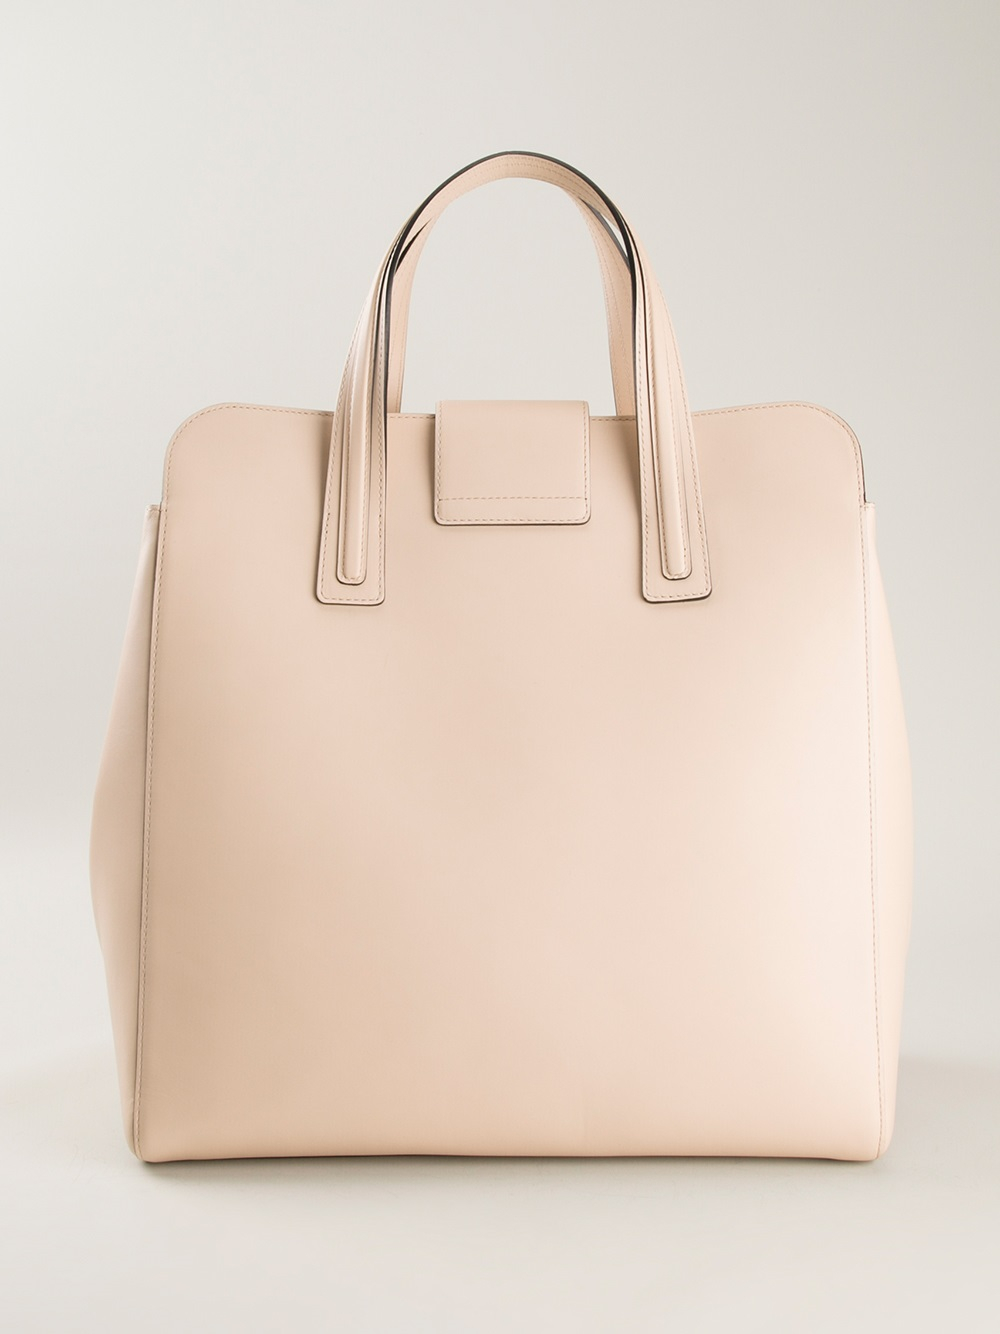 Delvaux Simplissme Ns Tote Cadence in Natural